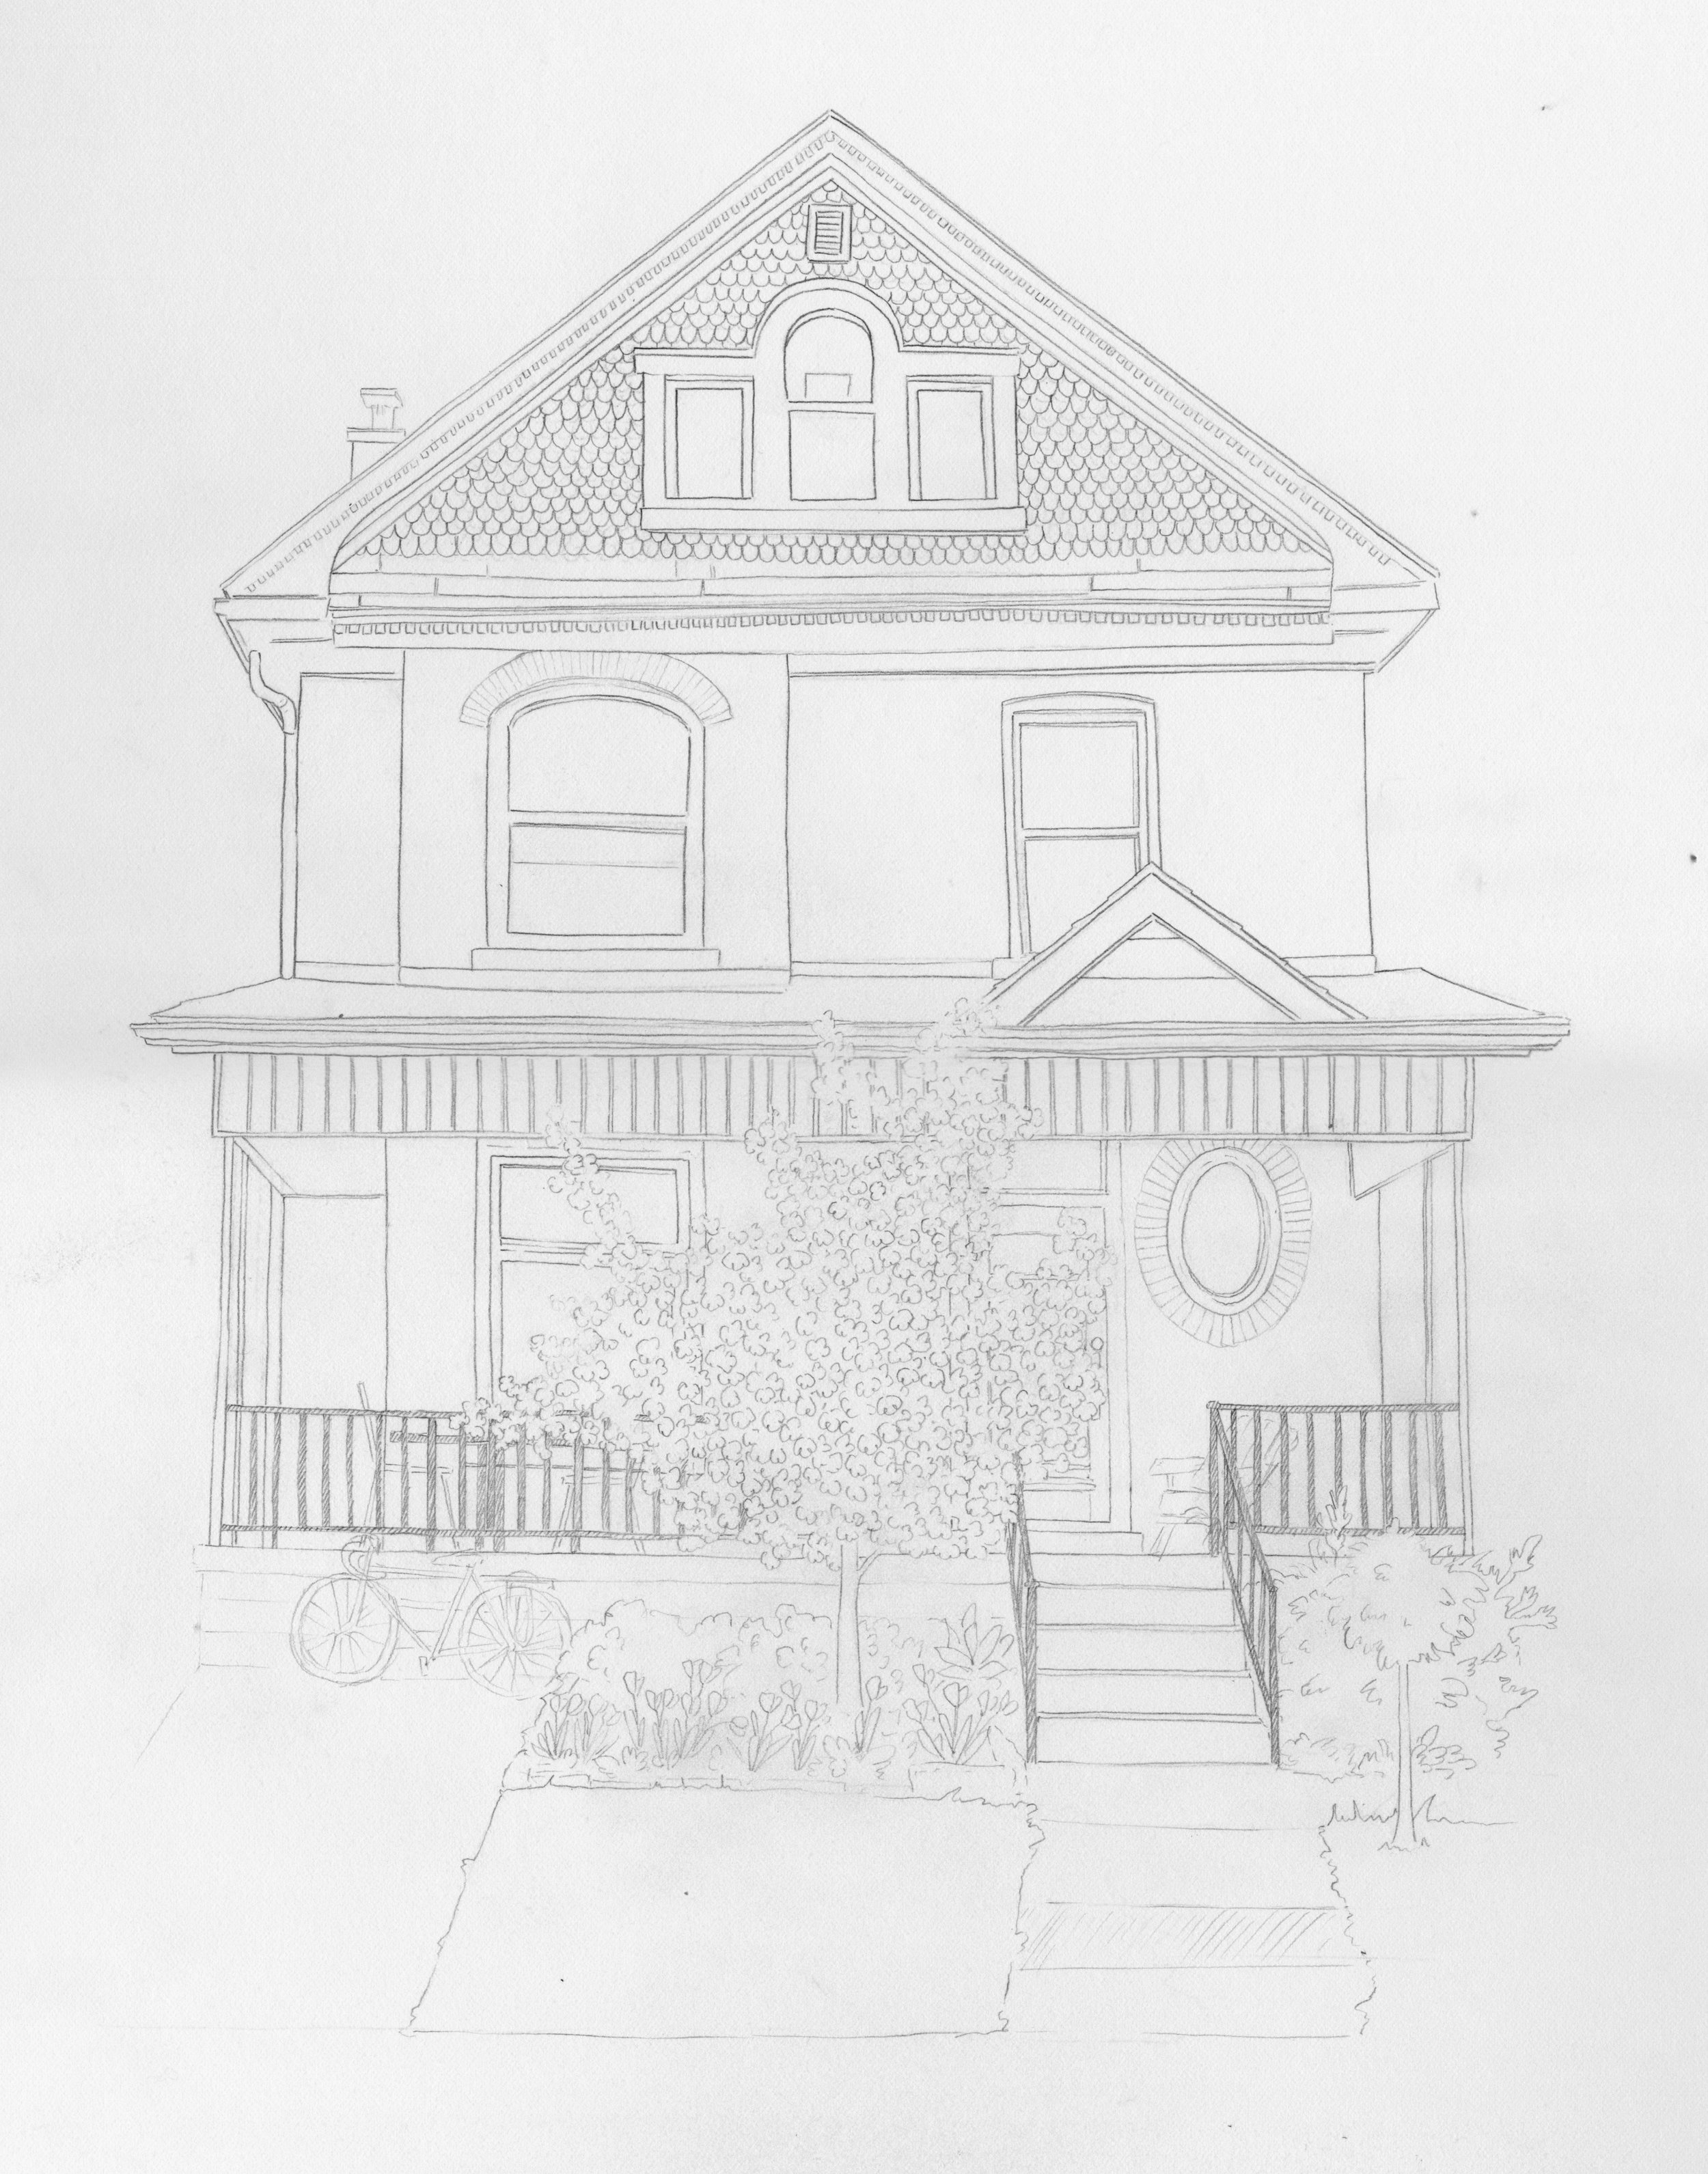 Pencil sketch for a house portrait. The client requested that I include a bicycle to represent their love of cycling, to have the apricot tree and the forsythia in bloom, and to add in some daffodils to complete the spring foliage! I also removed a car from the driveway.